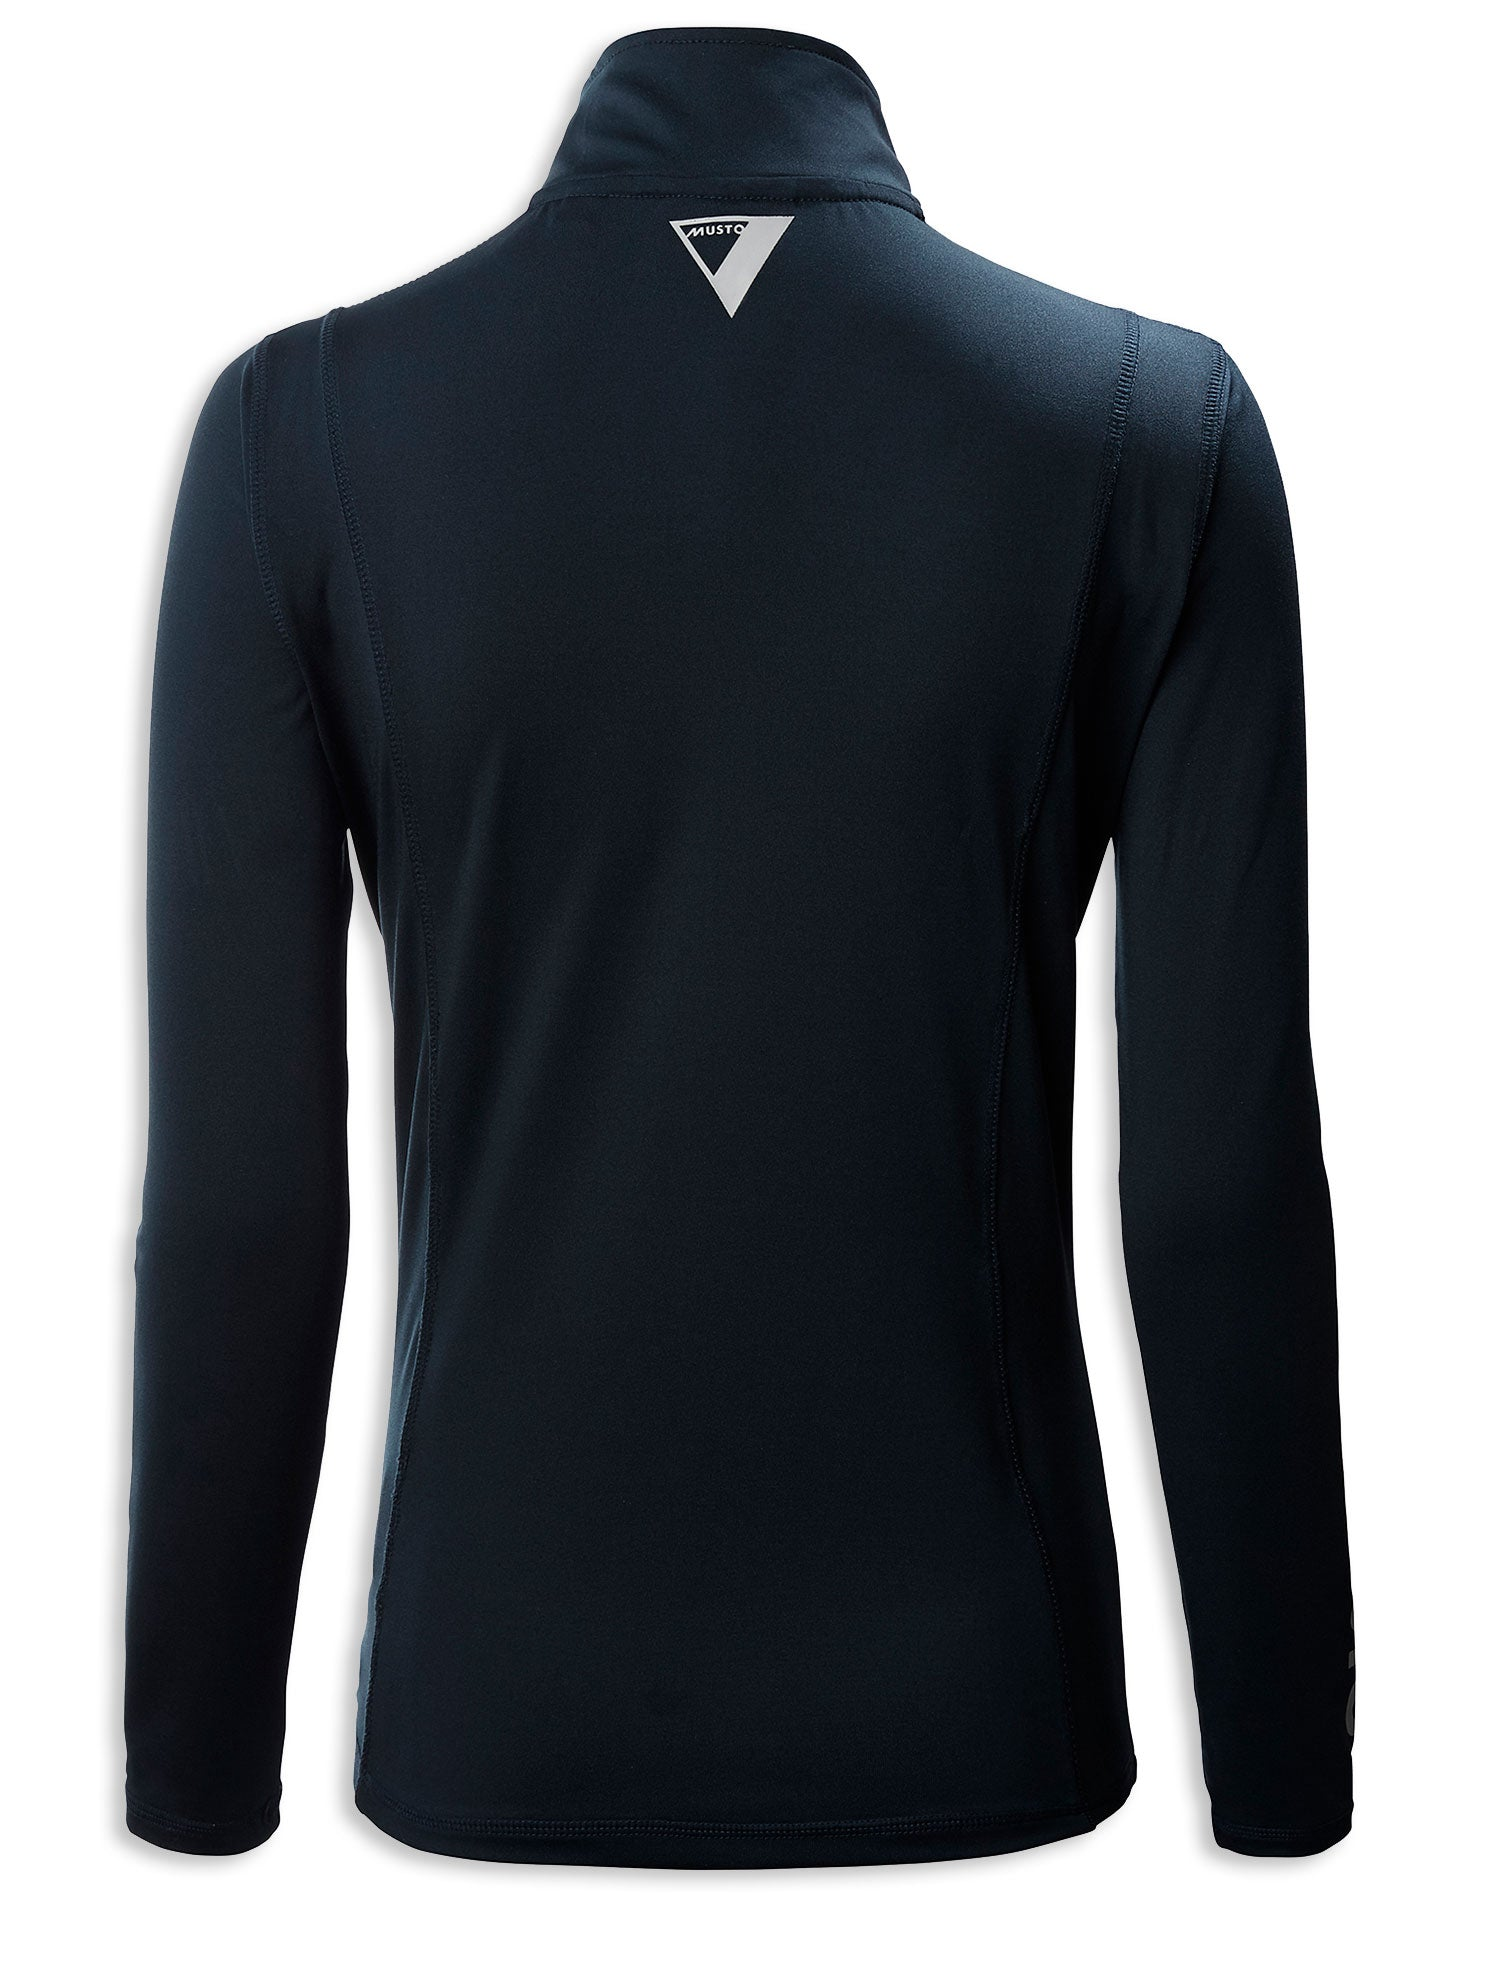 Back View Musto Ladies Cross Country Top